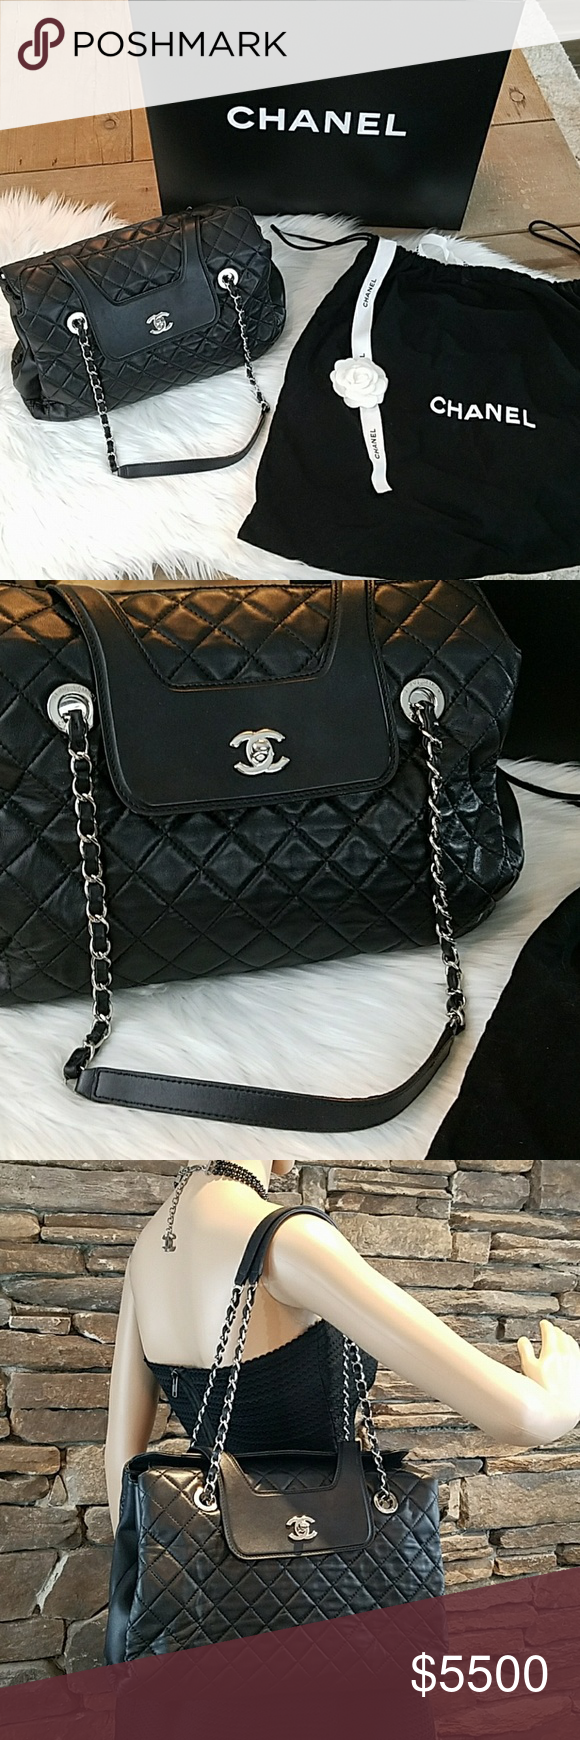 db16e5aa93c8 NWT CHANEL Authentic Quilted Large Open Flap Tote NWT Authentic, New, in  box with